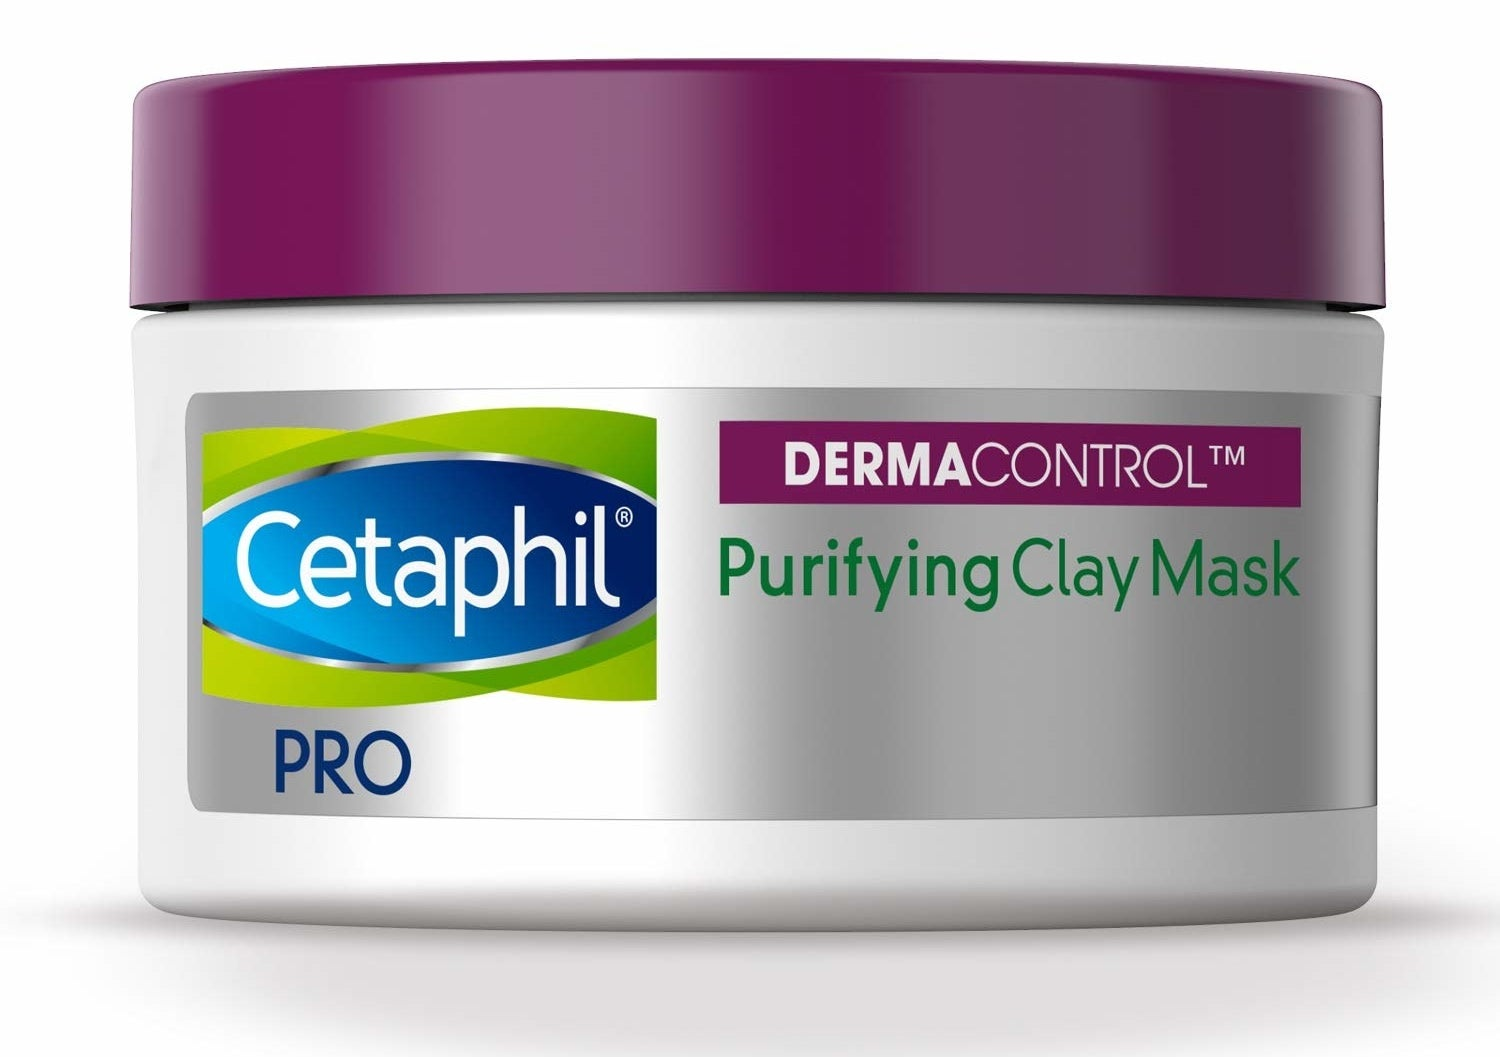 A jar of the Cetaphil Purifying Clay Mask